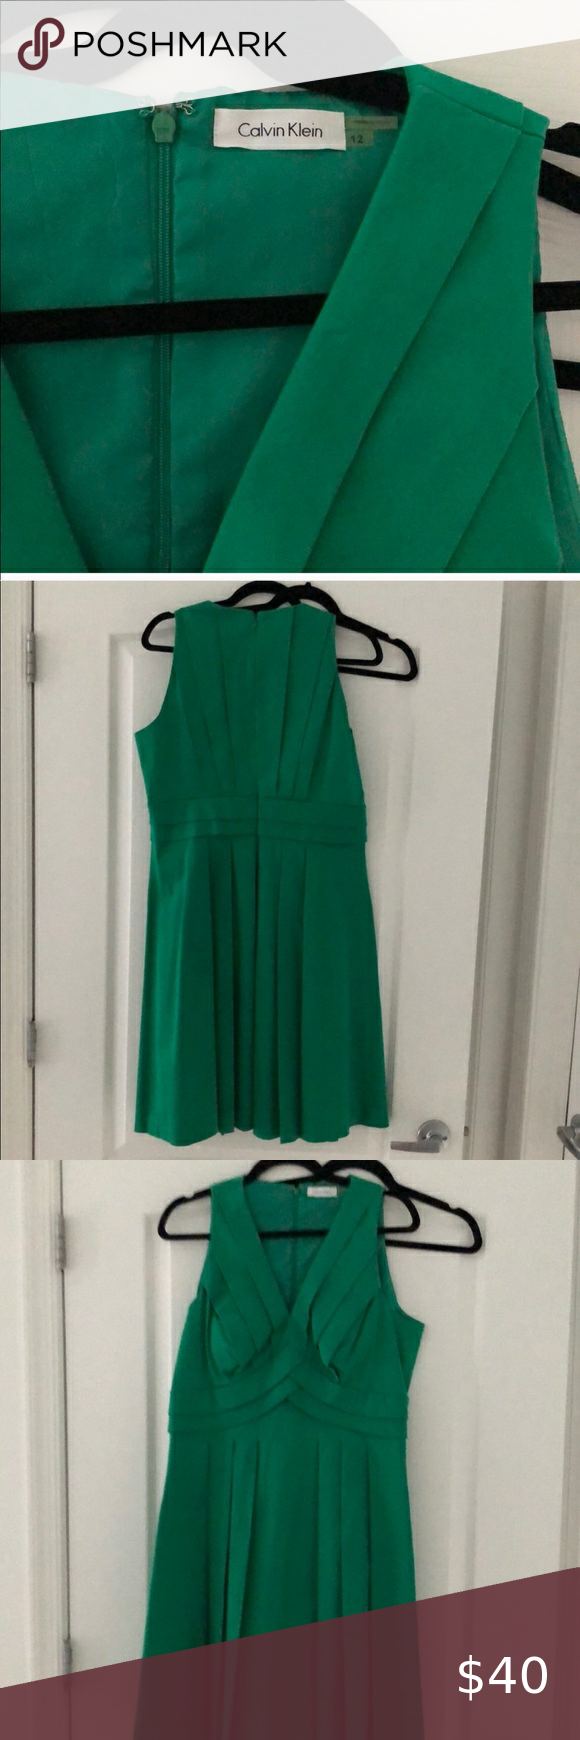 Calvin Klein Kelly Green V Neck Pleated Dress Reposhing this item I purchased from @roxybo3. Loved it, but ready to rotate for something new. Questions? Leave a comment below! Calvin Klein Dresses Midi